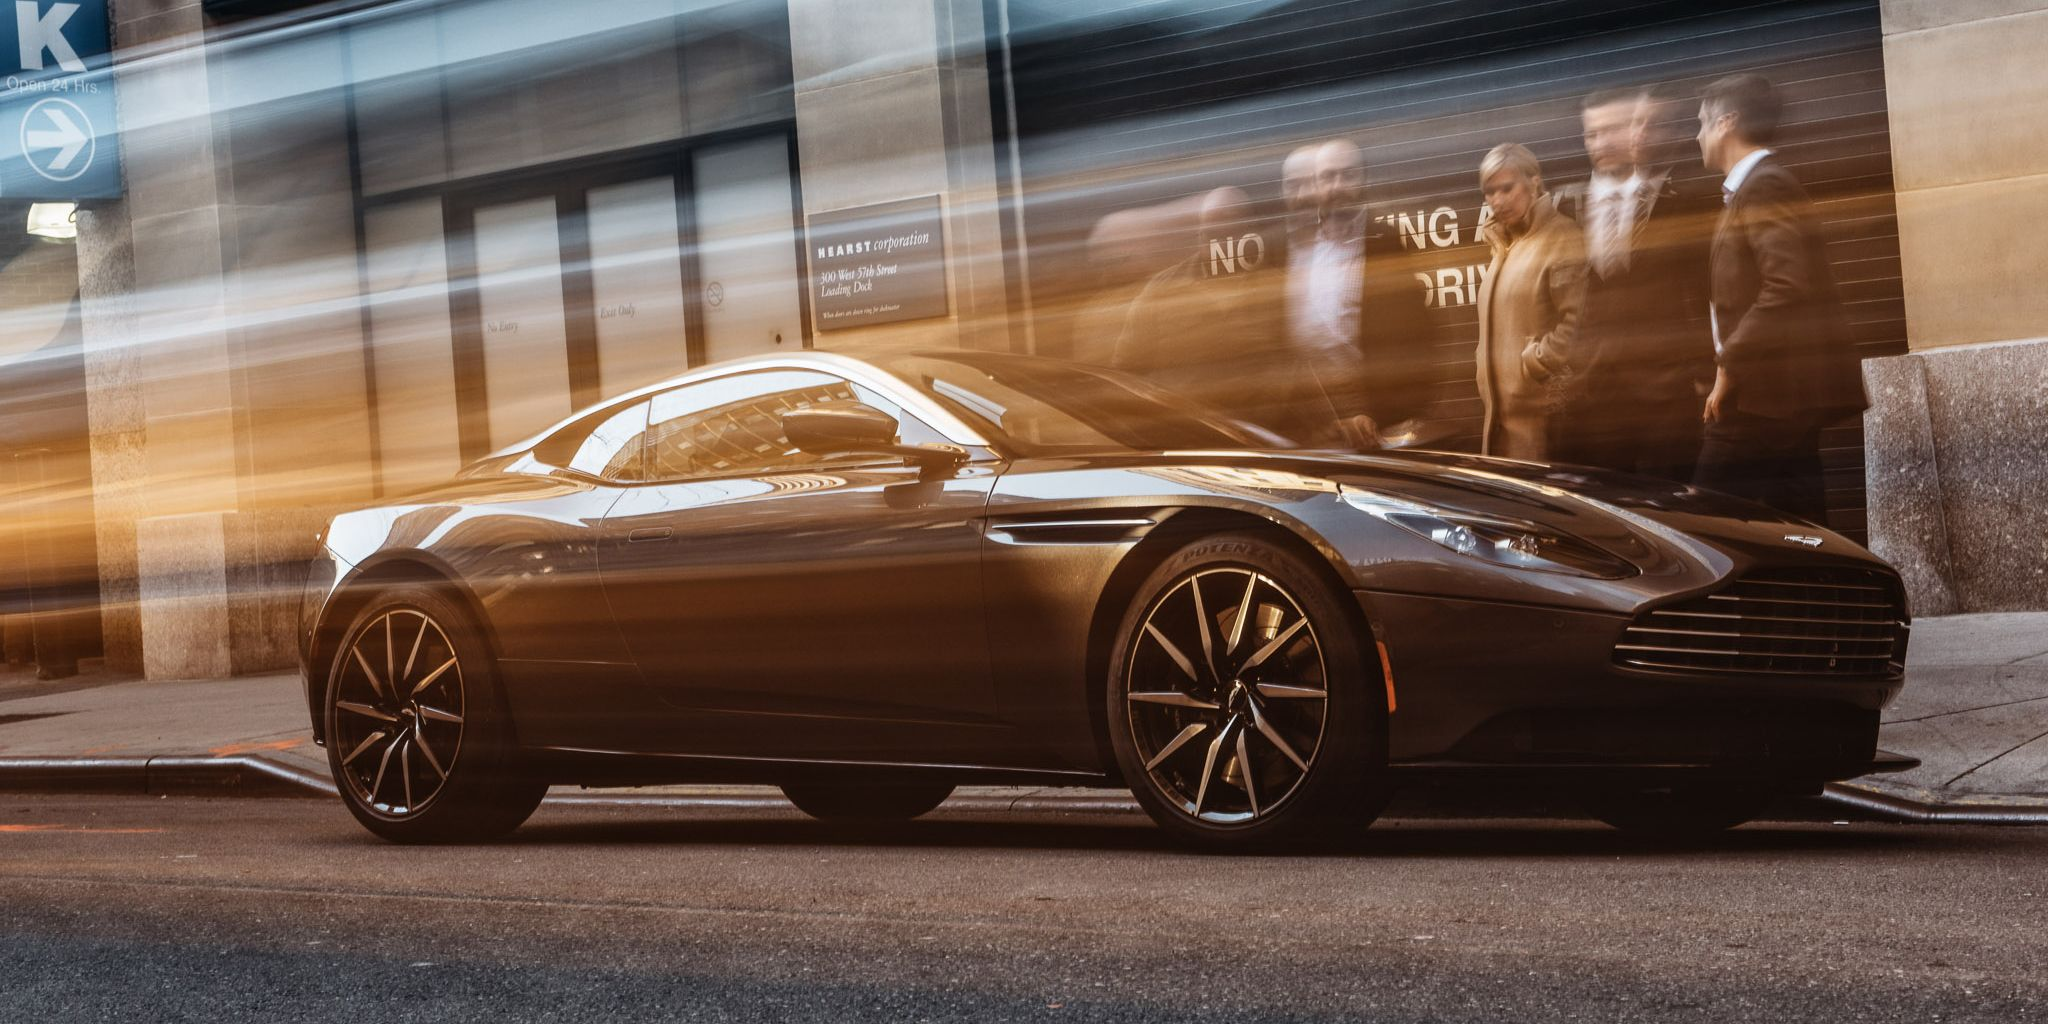 Take a Look at Every Gorgeous Angle of the New Aston Martin DB11